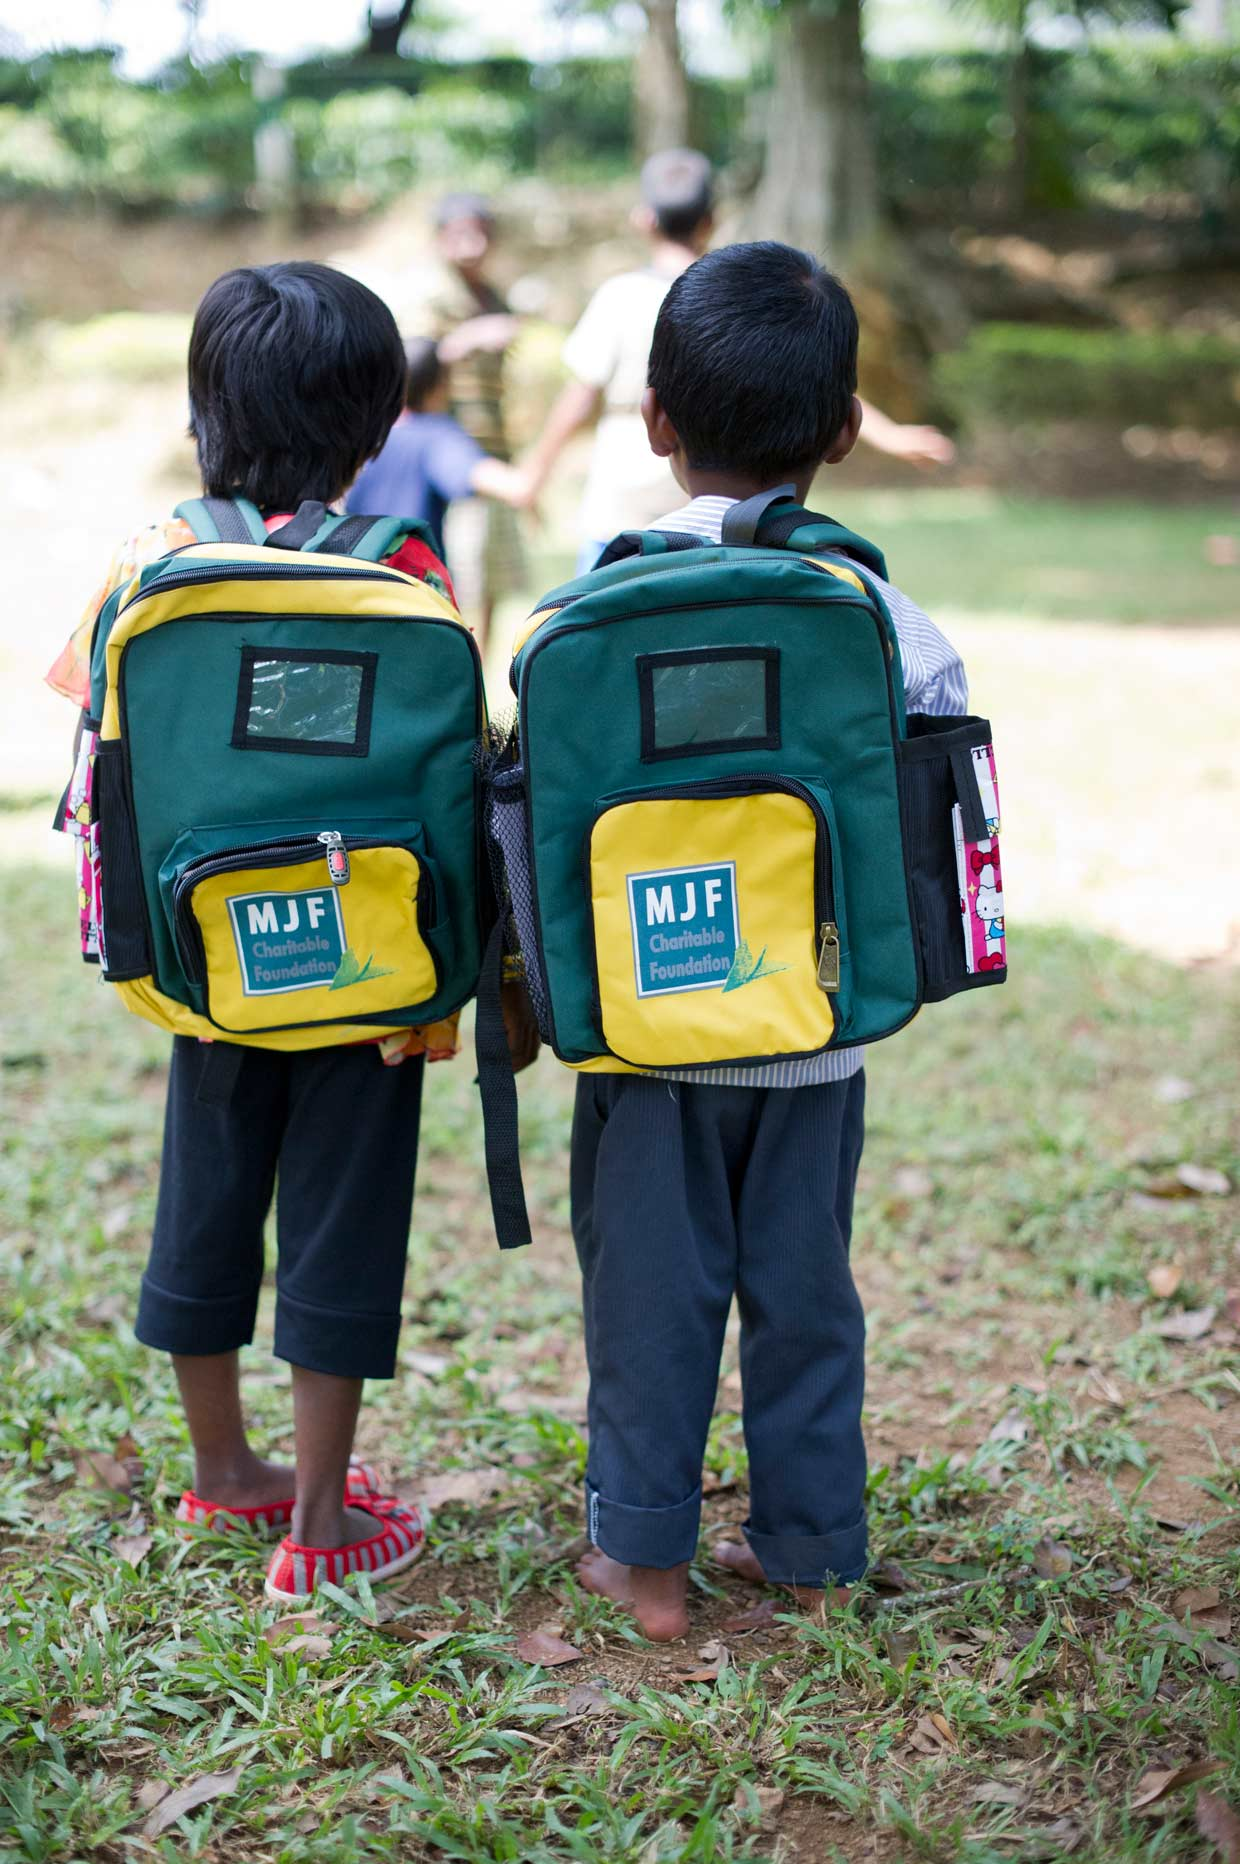 Every year, young children attending Dilmah sponsored nurseries in the plantations are provided with stationery and school bags for their new term. This is an ongoing effort of the MJF Charitable Foundation.